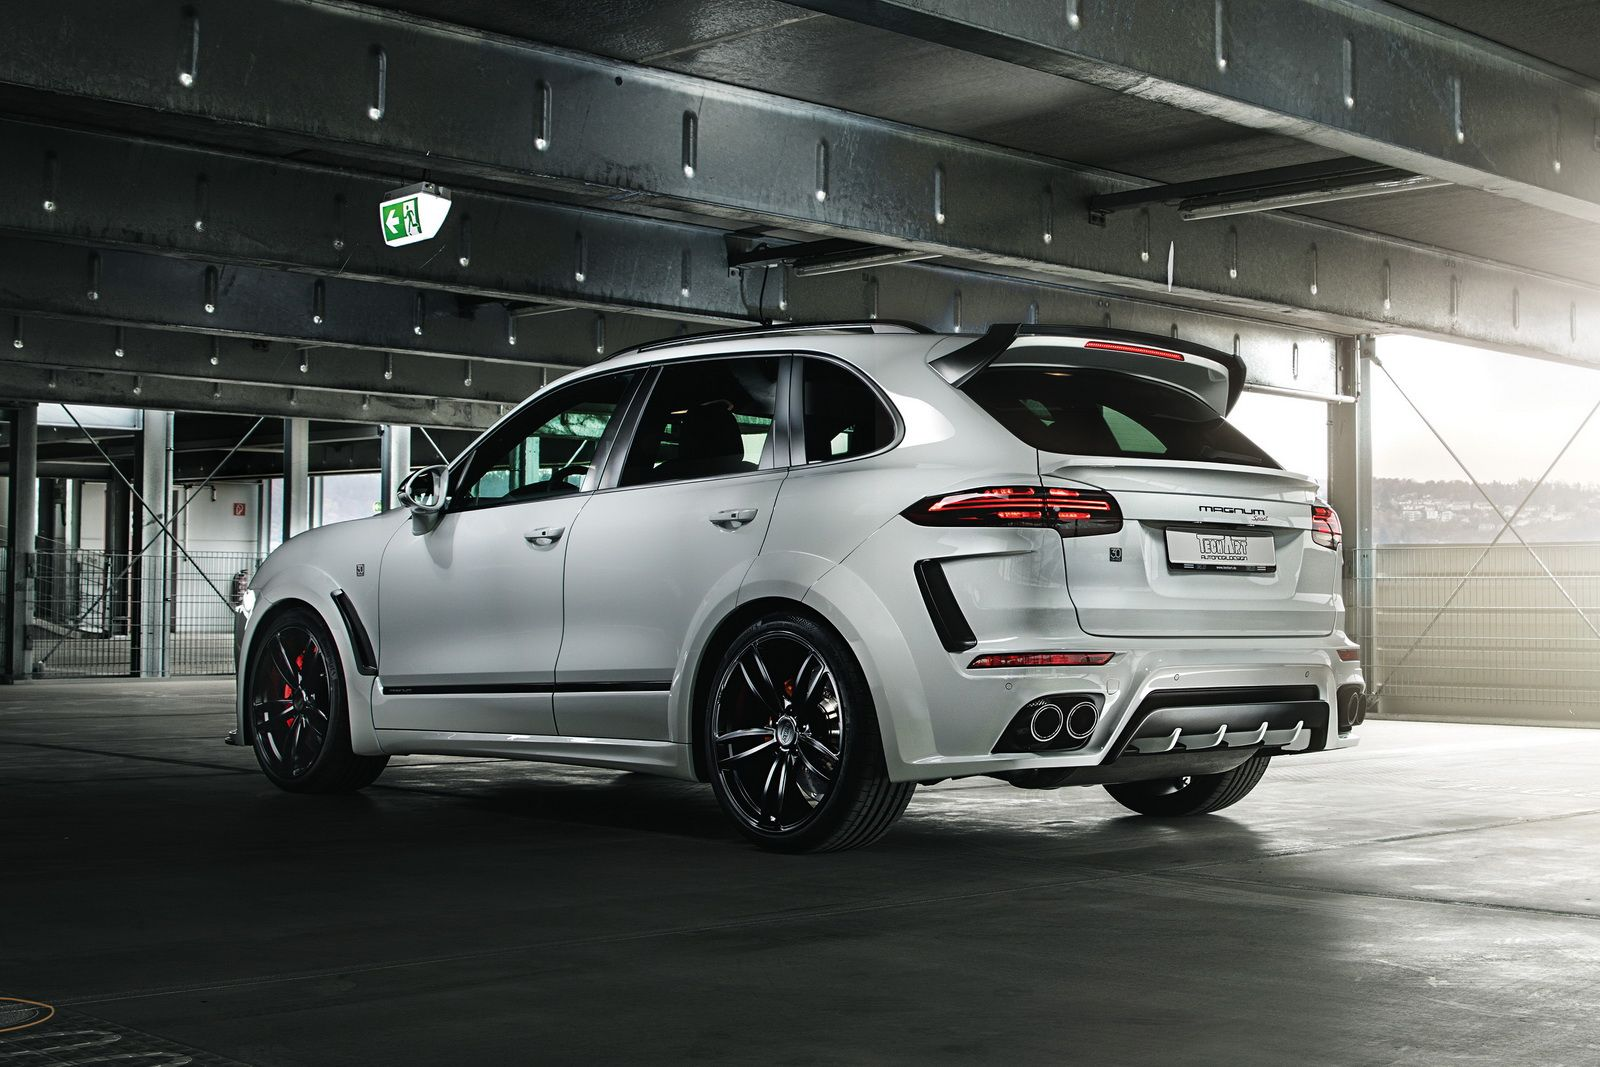 Techart S New 720hp Porsche Cayenne Magnum Sport Is Not For The Faint Hearted Mazda Cars Mazda Cx3 Compact Suv